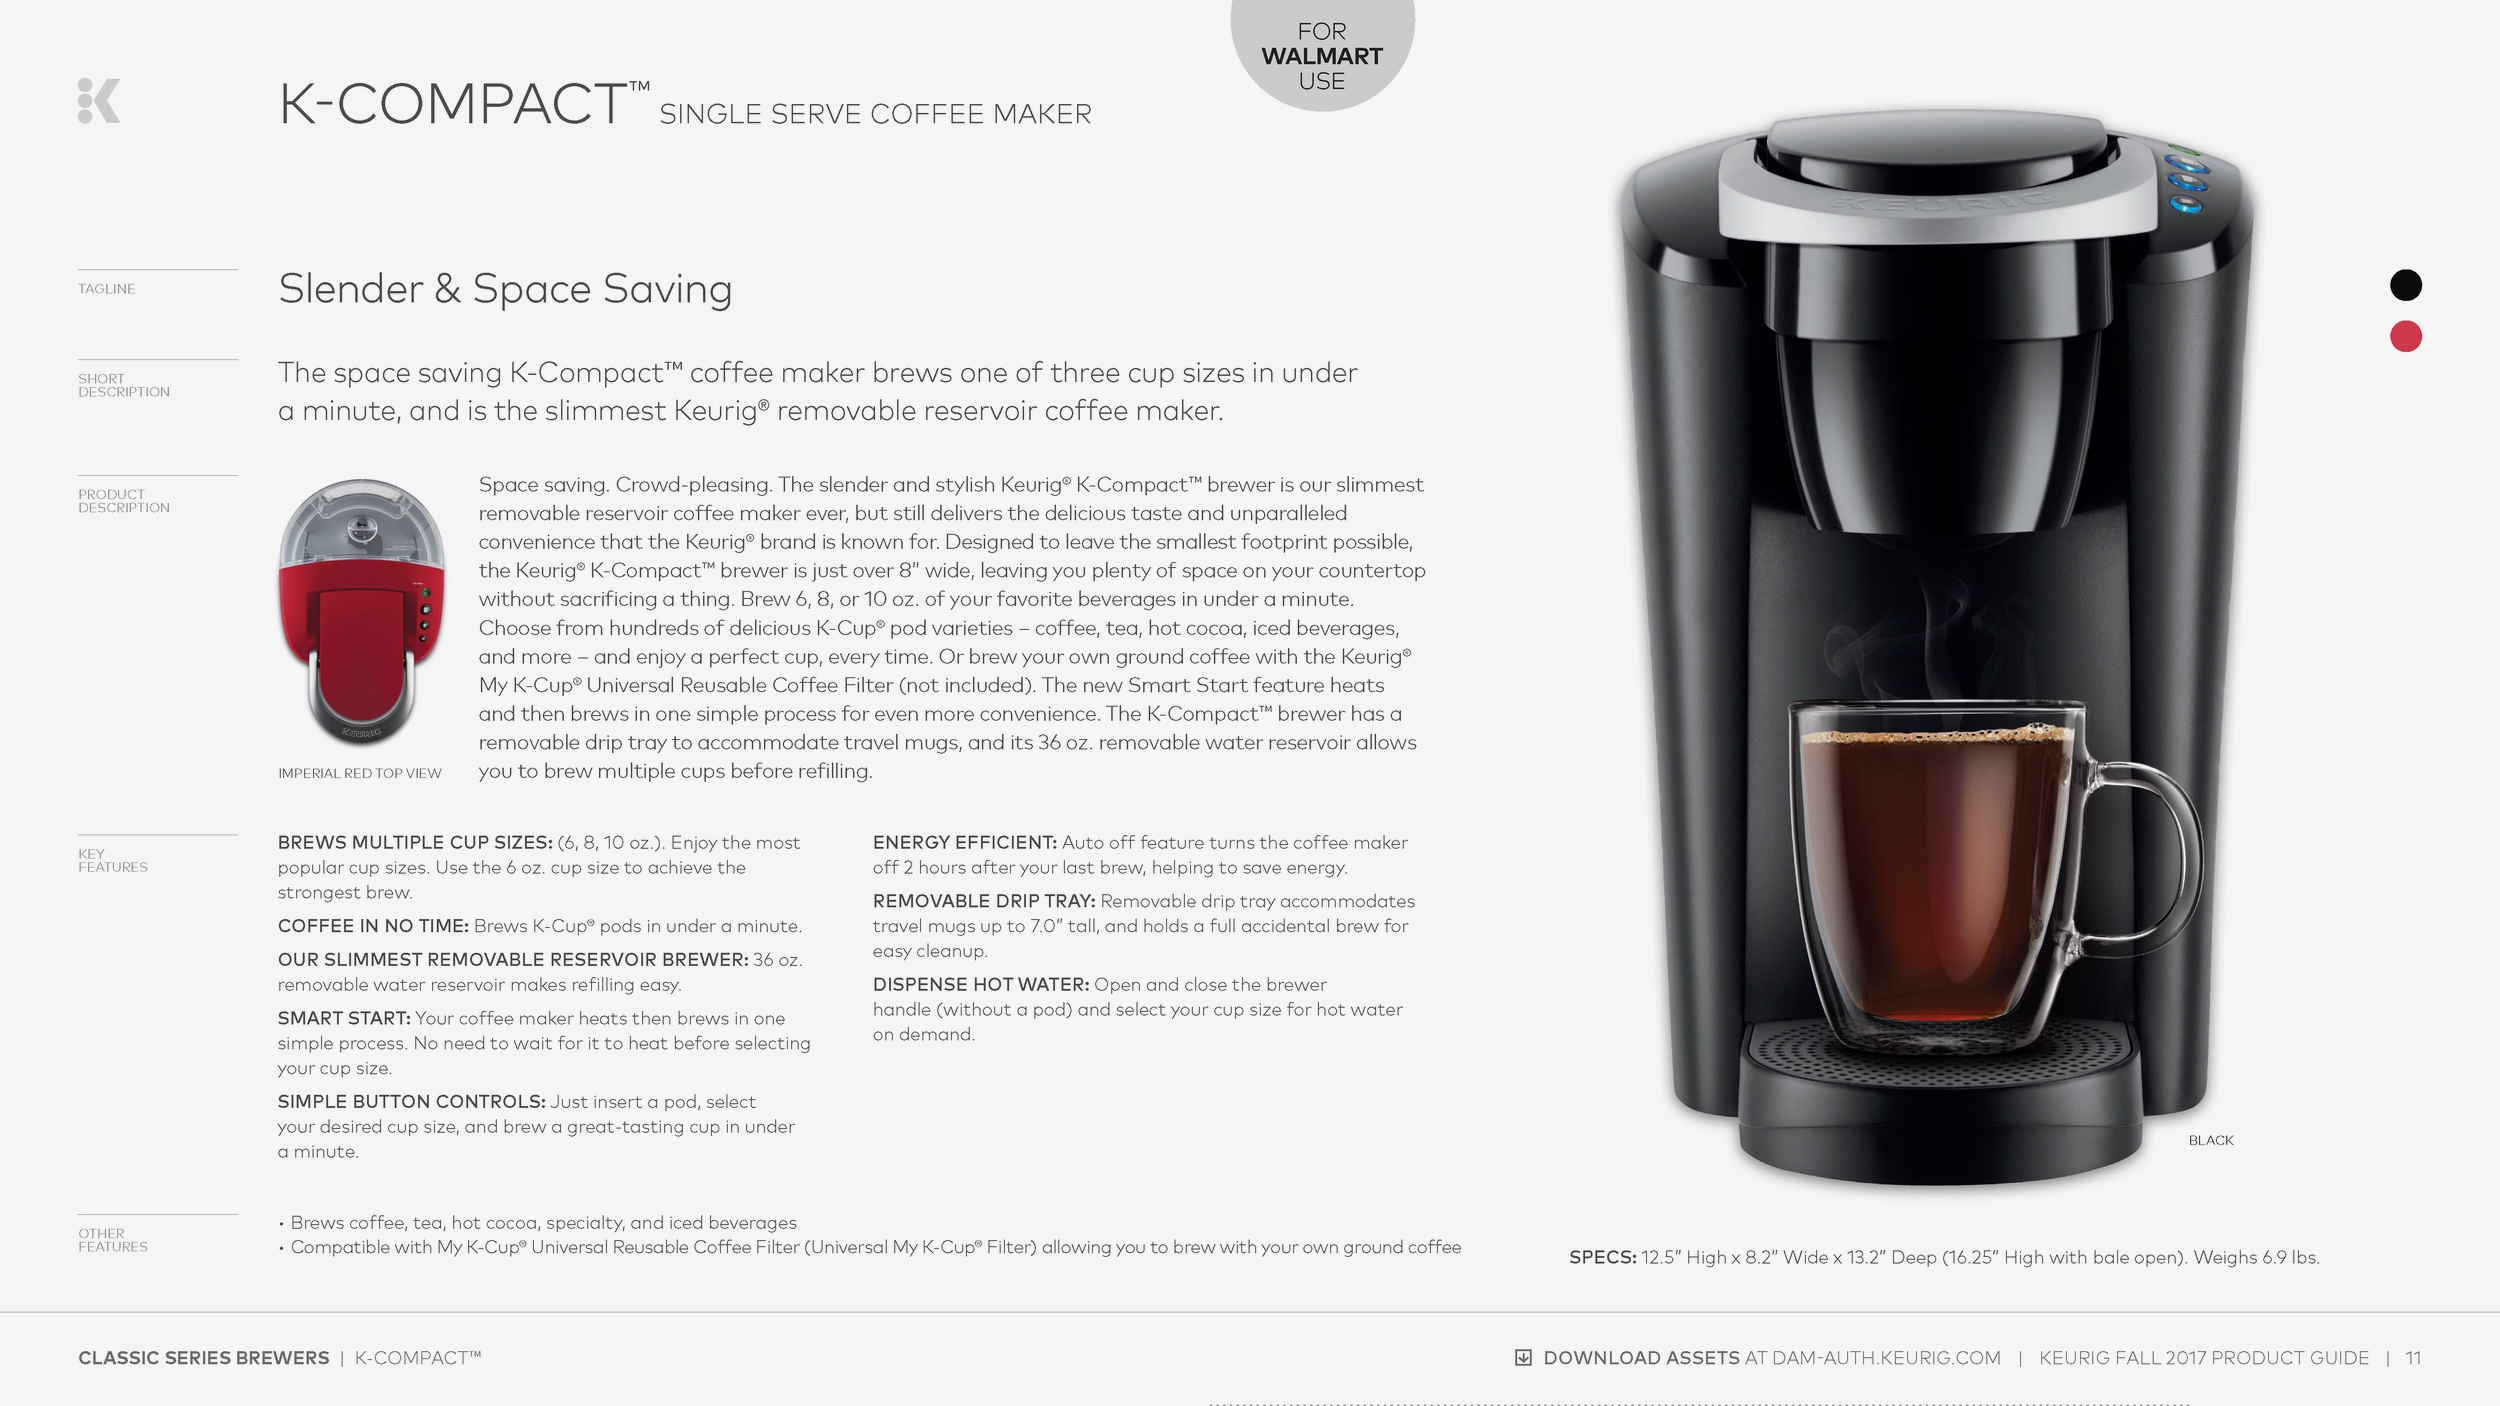 keurig_product_guide_F17_R8_Page_11.png